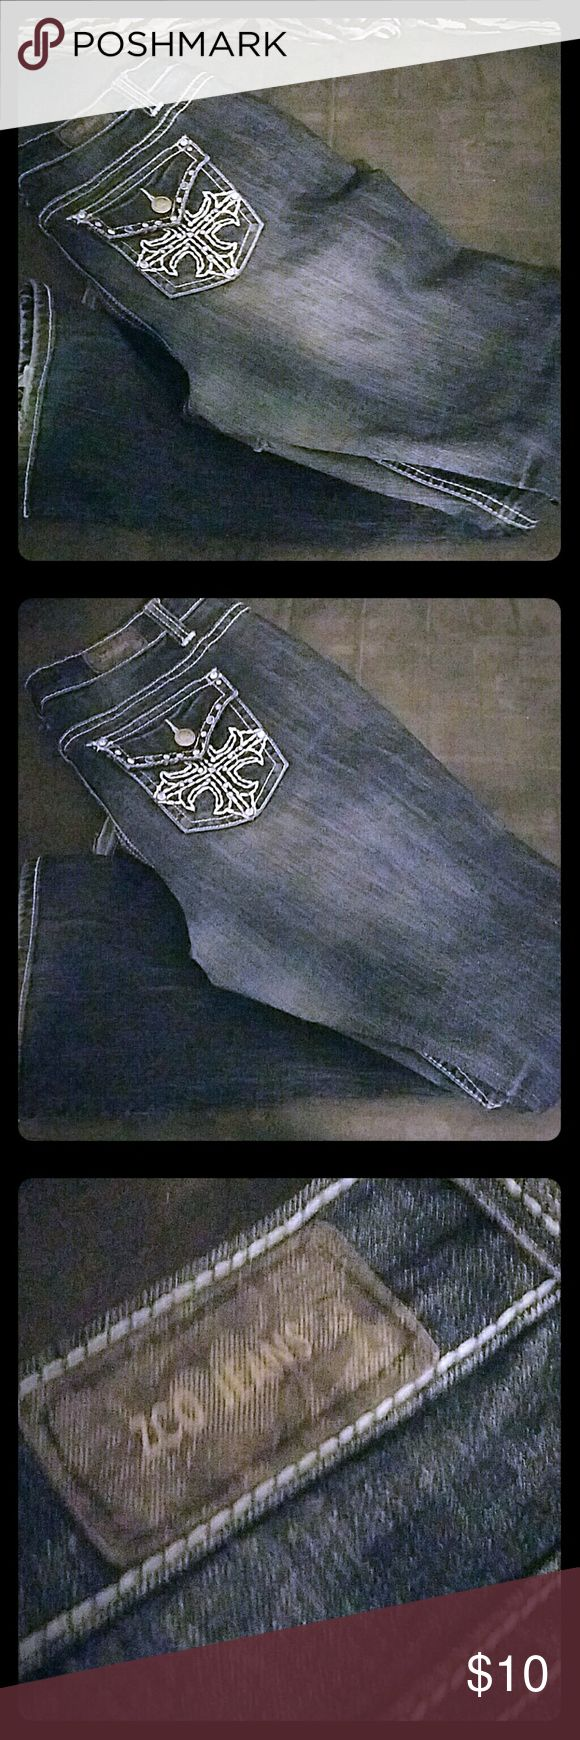 Selling this Size 16 ZCO Jeans on Poshmark! My username is: meganlmccarthy. #shopmycloset #poshmark #fashion #shopping #style #forsale #ZCO #Denim